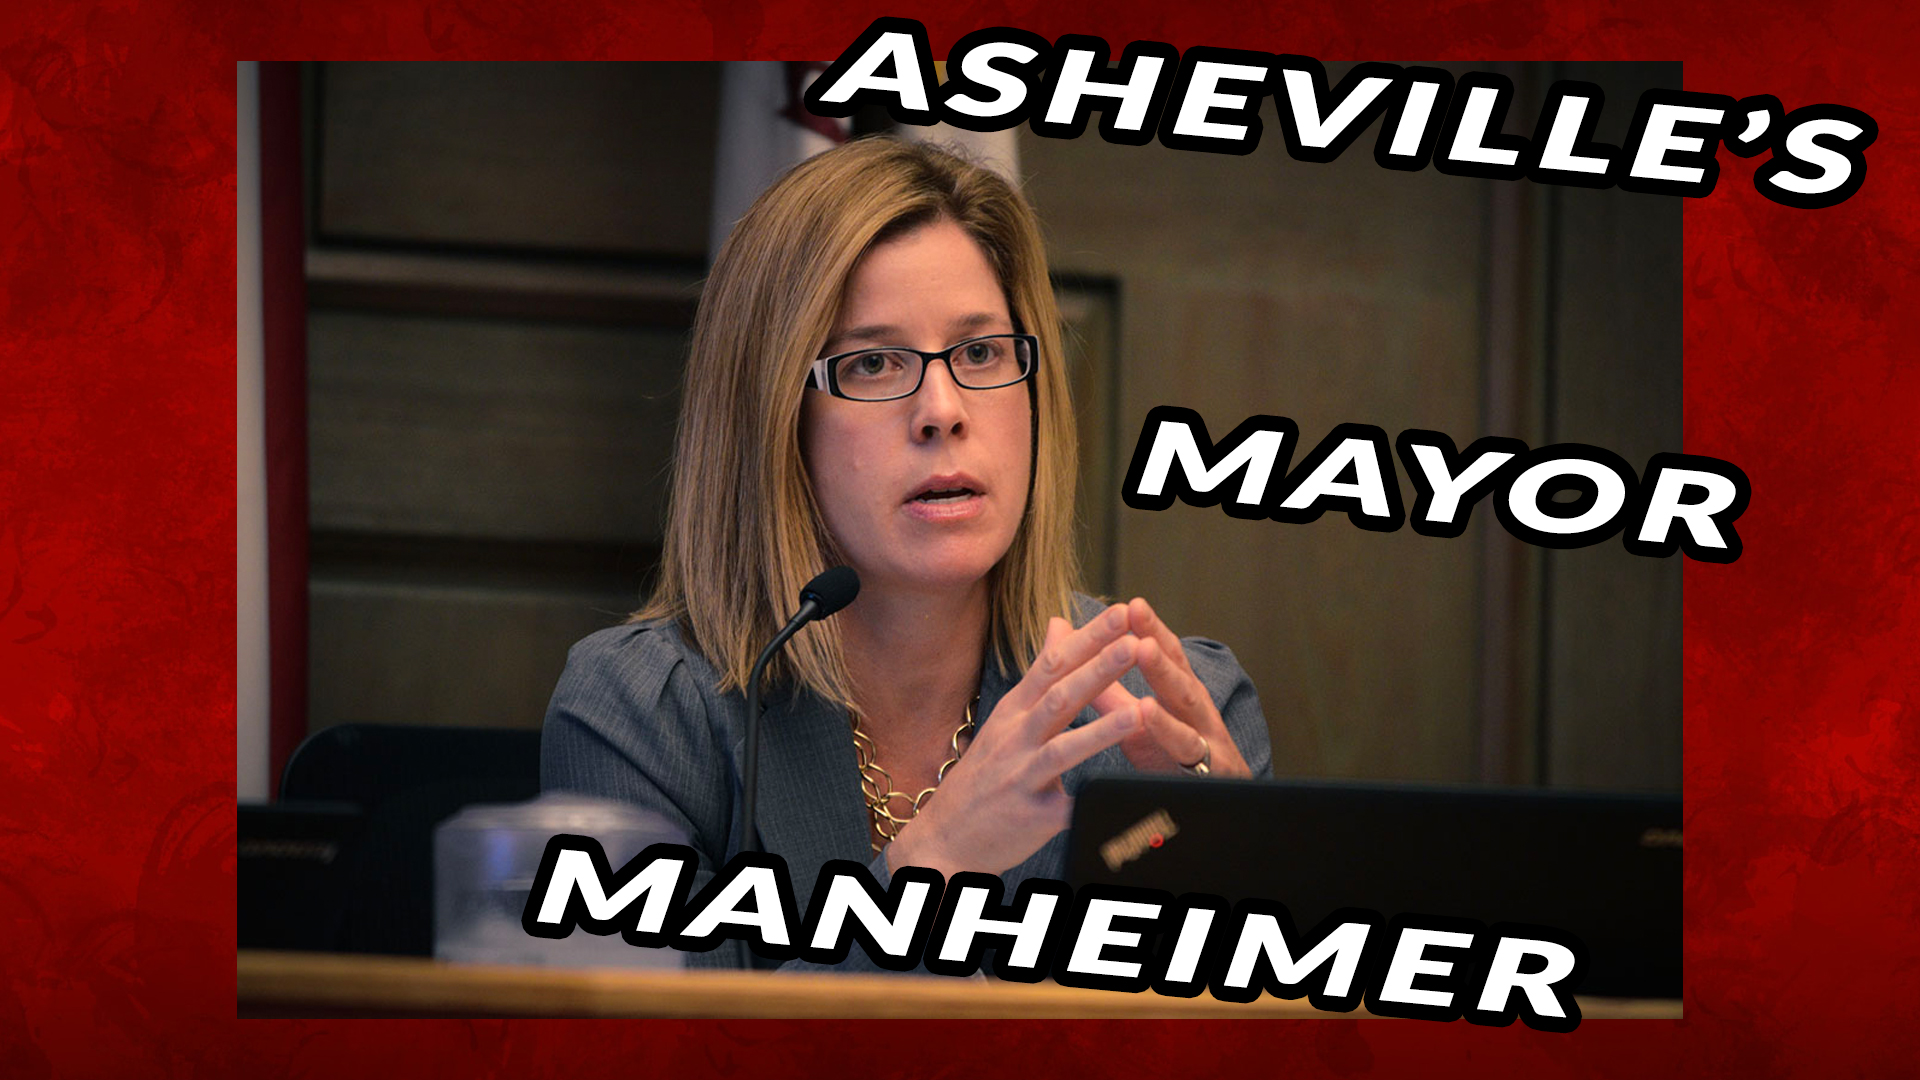 Esther Manheimer Mayor of Asheville